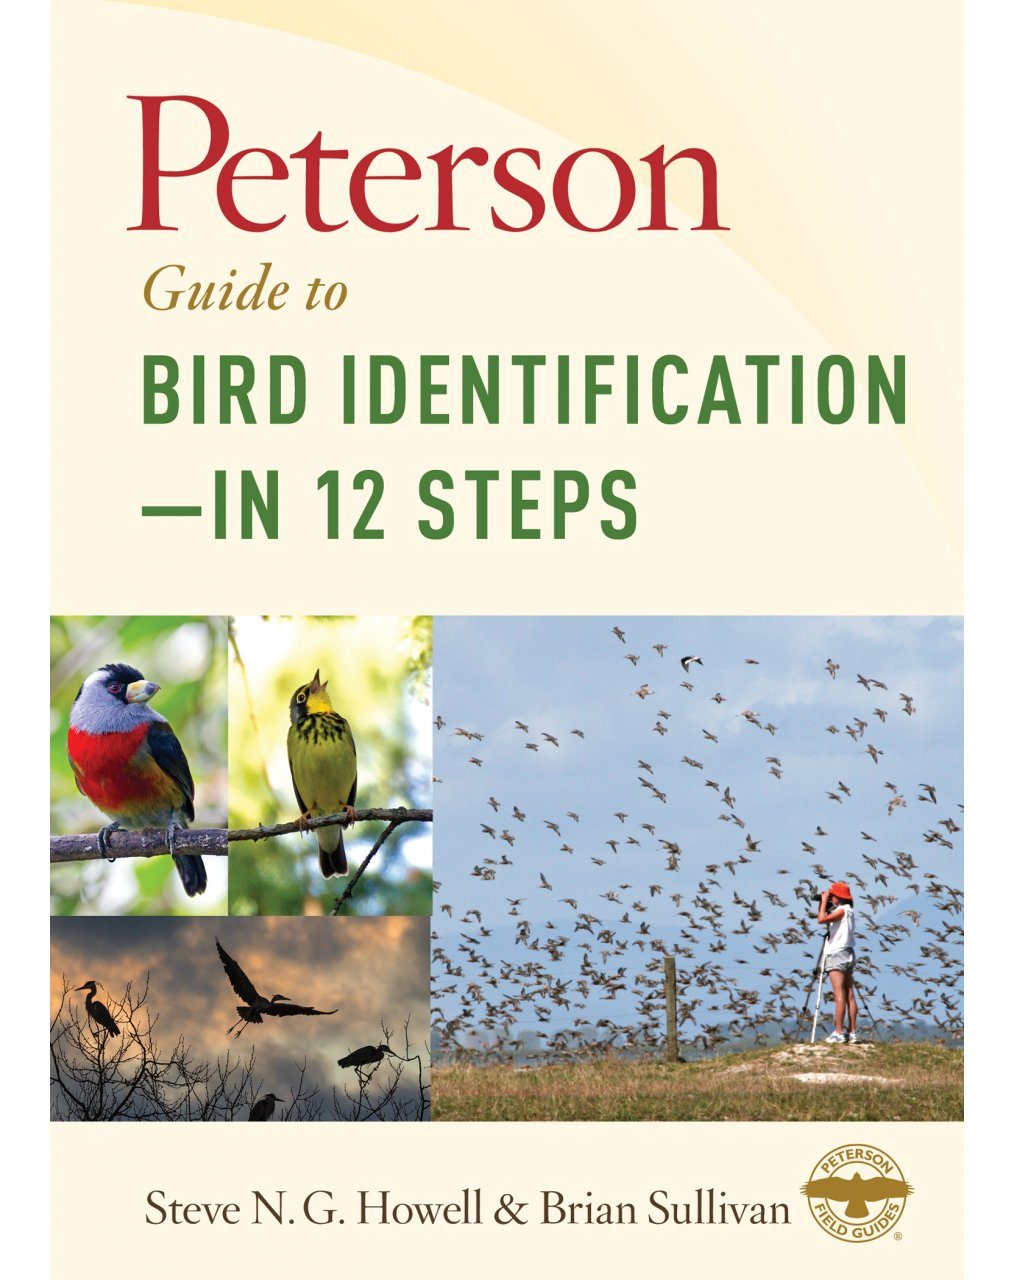 Peterson Guide to Bird Identification – in 12 Steps